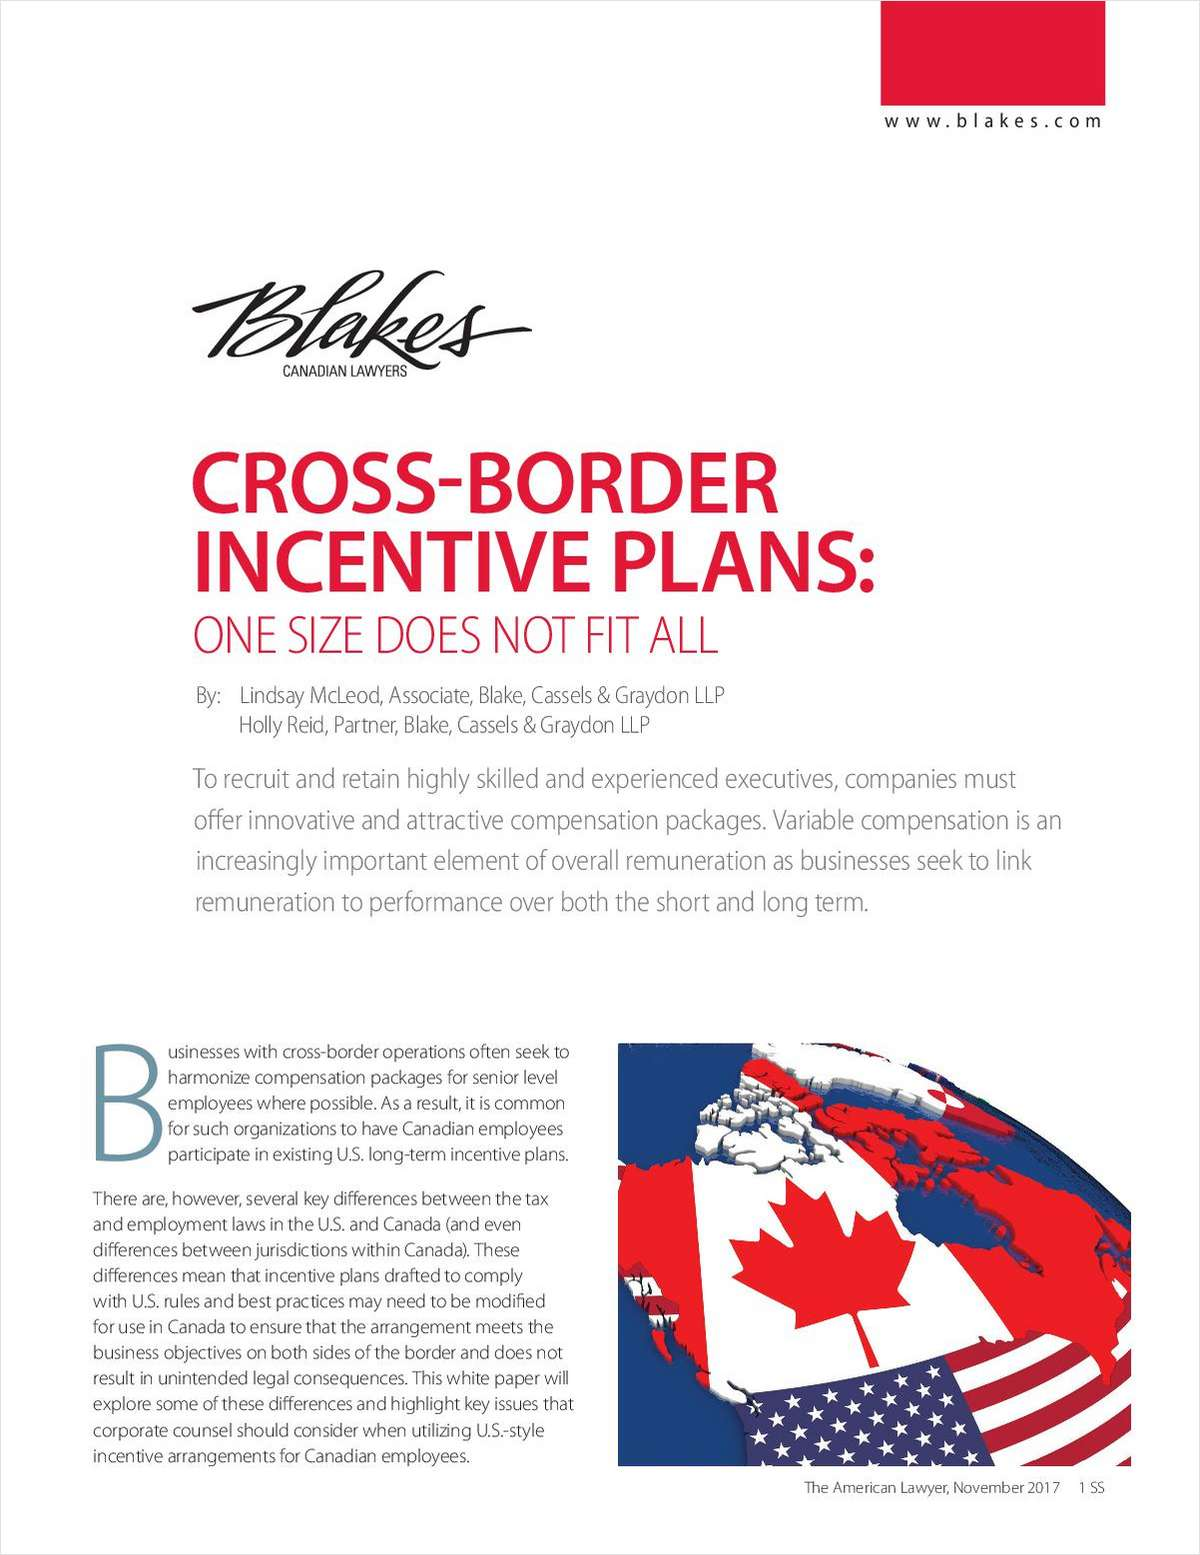 Cross-Border Incentive Plans: One Size Does Not Fit All